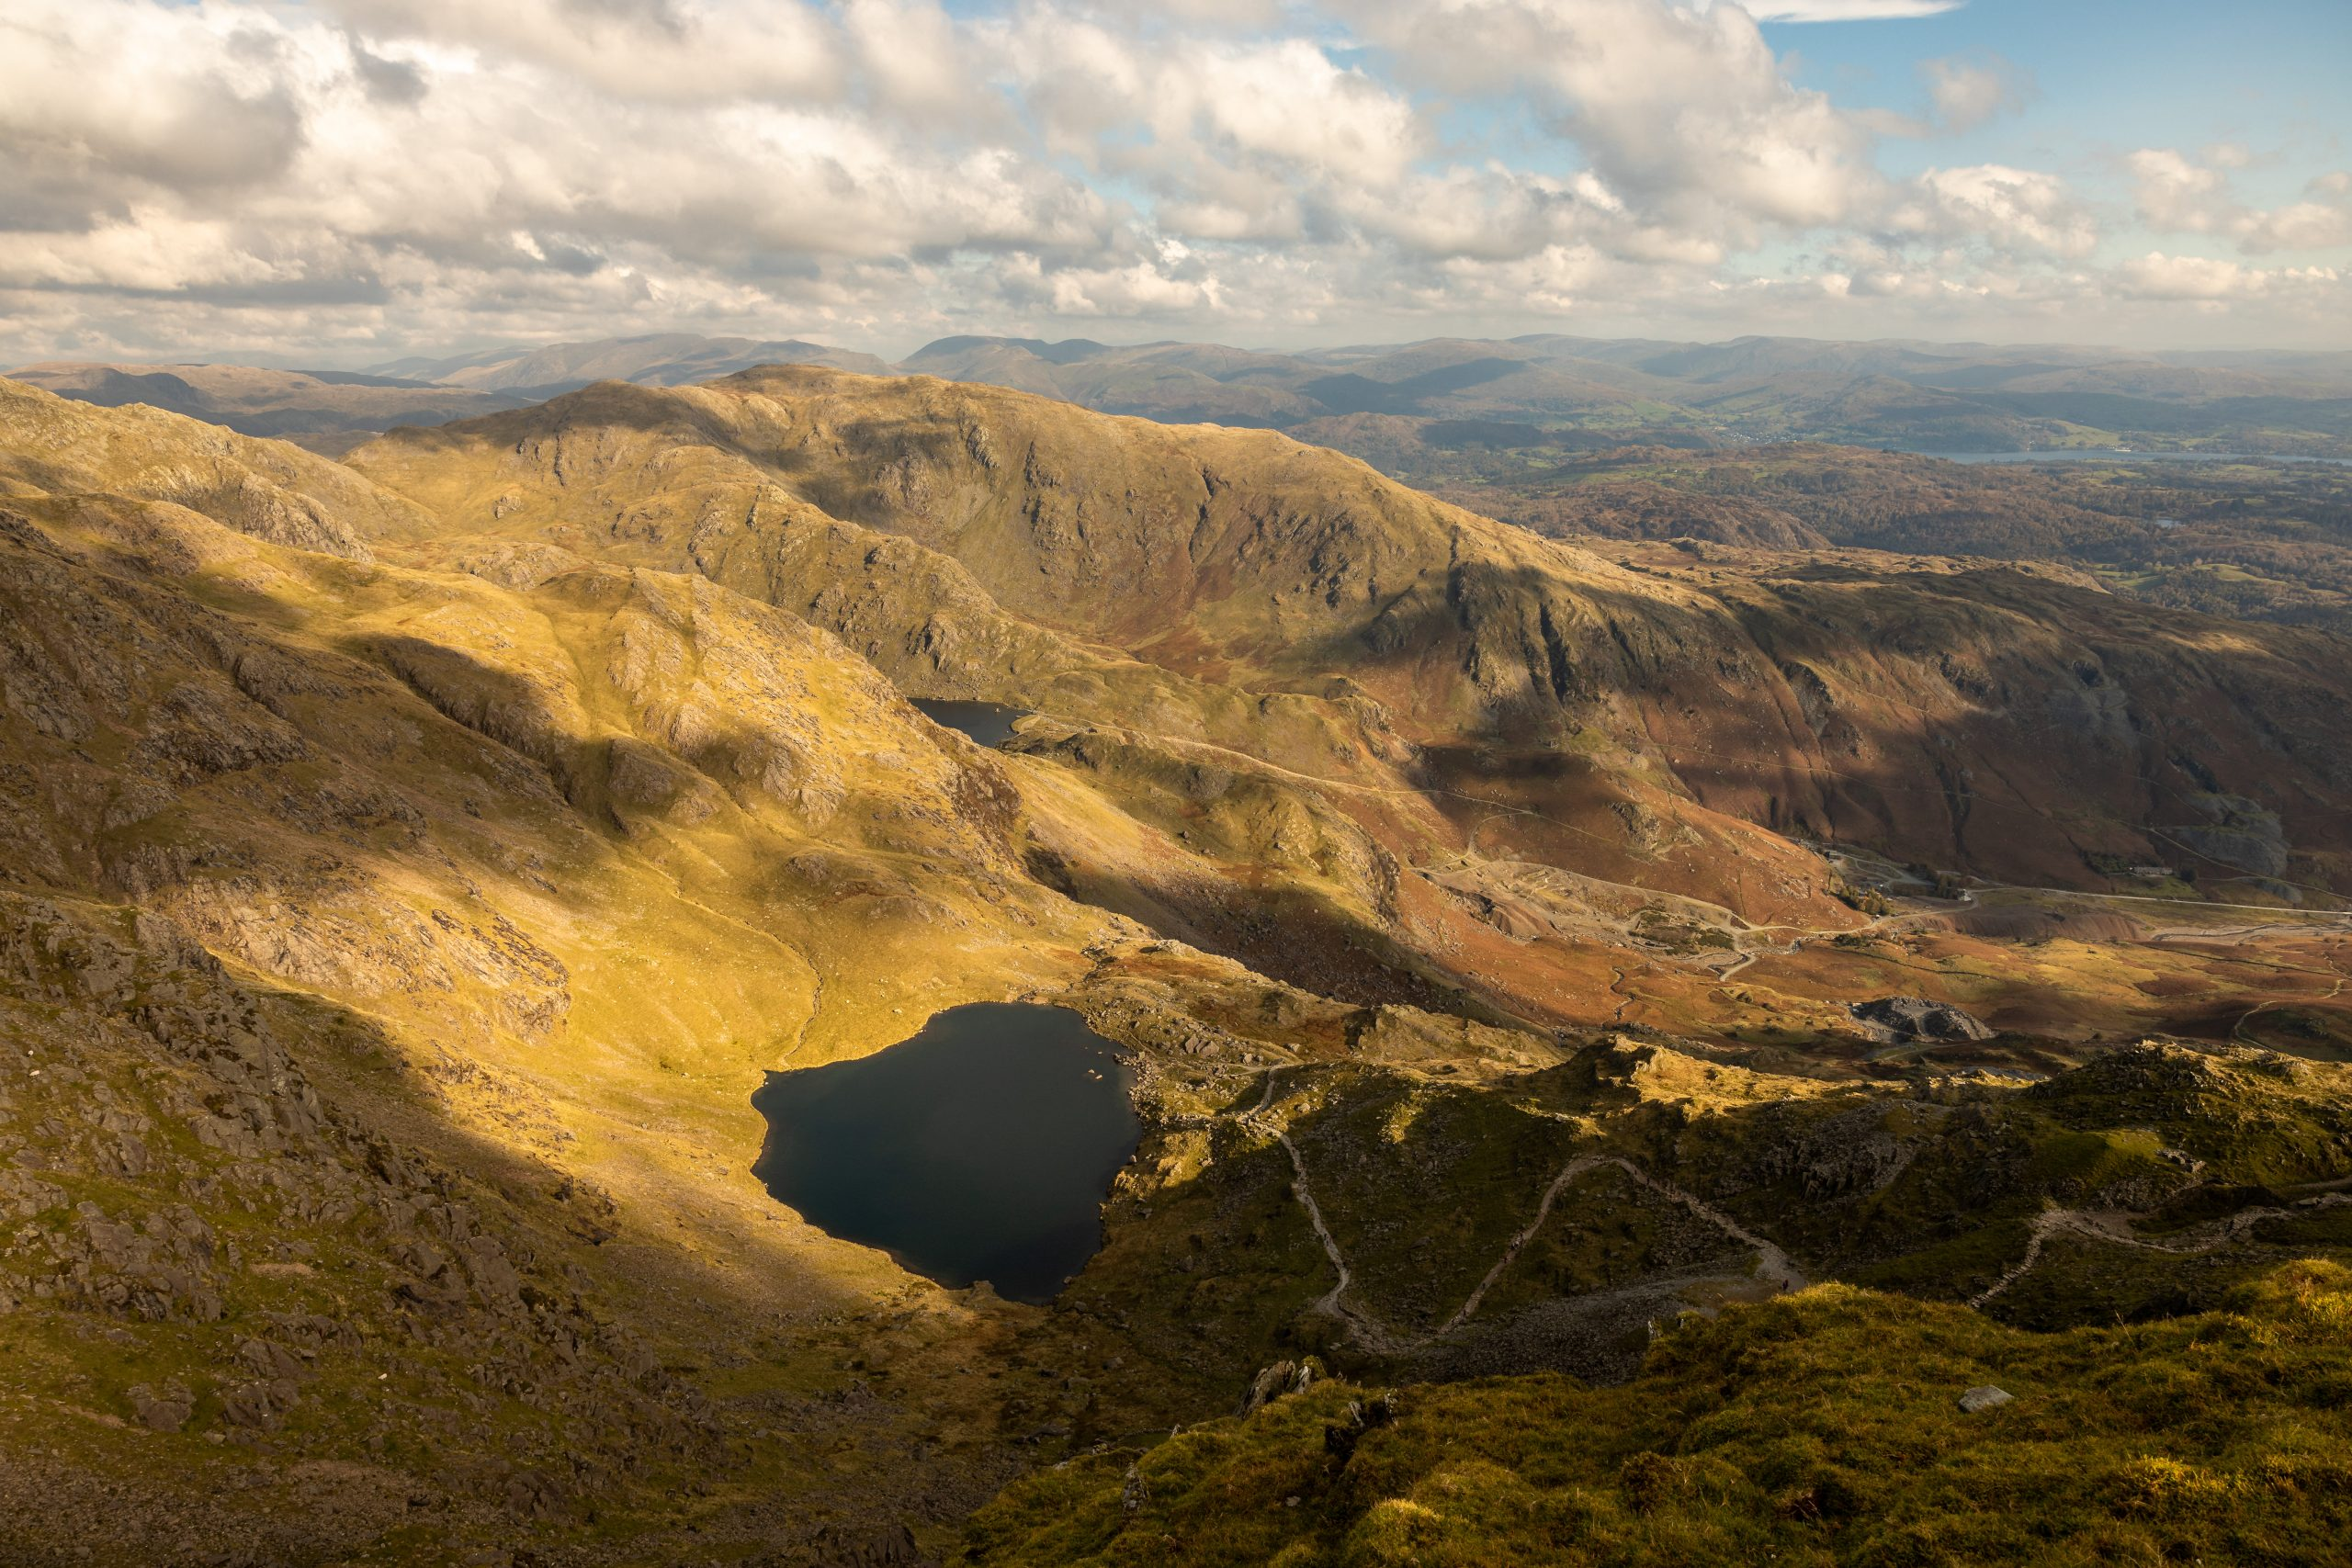 Low Water catches the sun during an autumn guided walk up the Old Man of Coniston in the Lake District